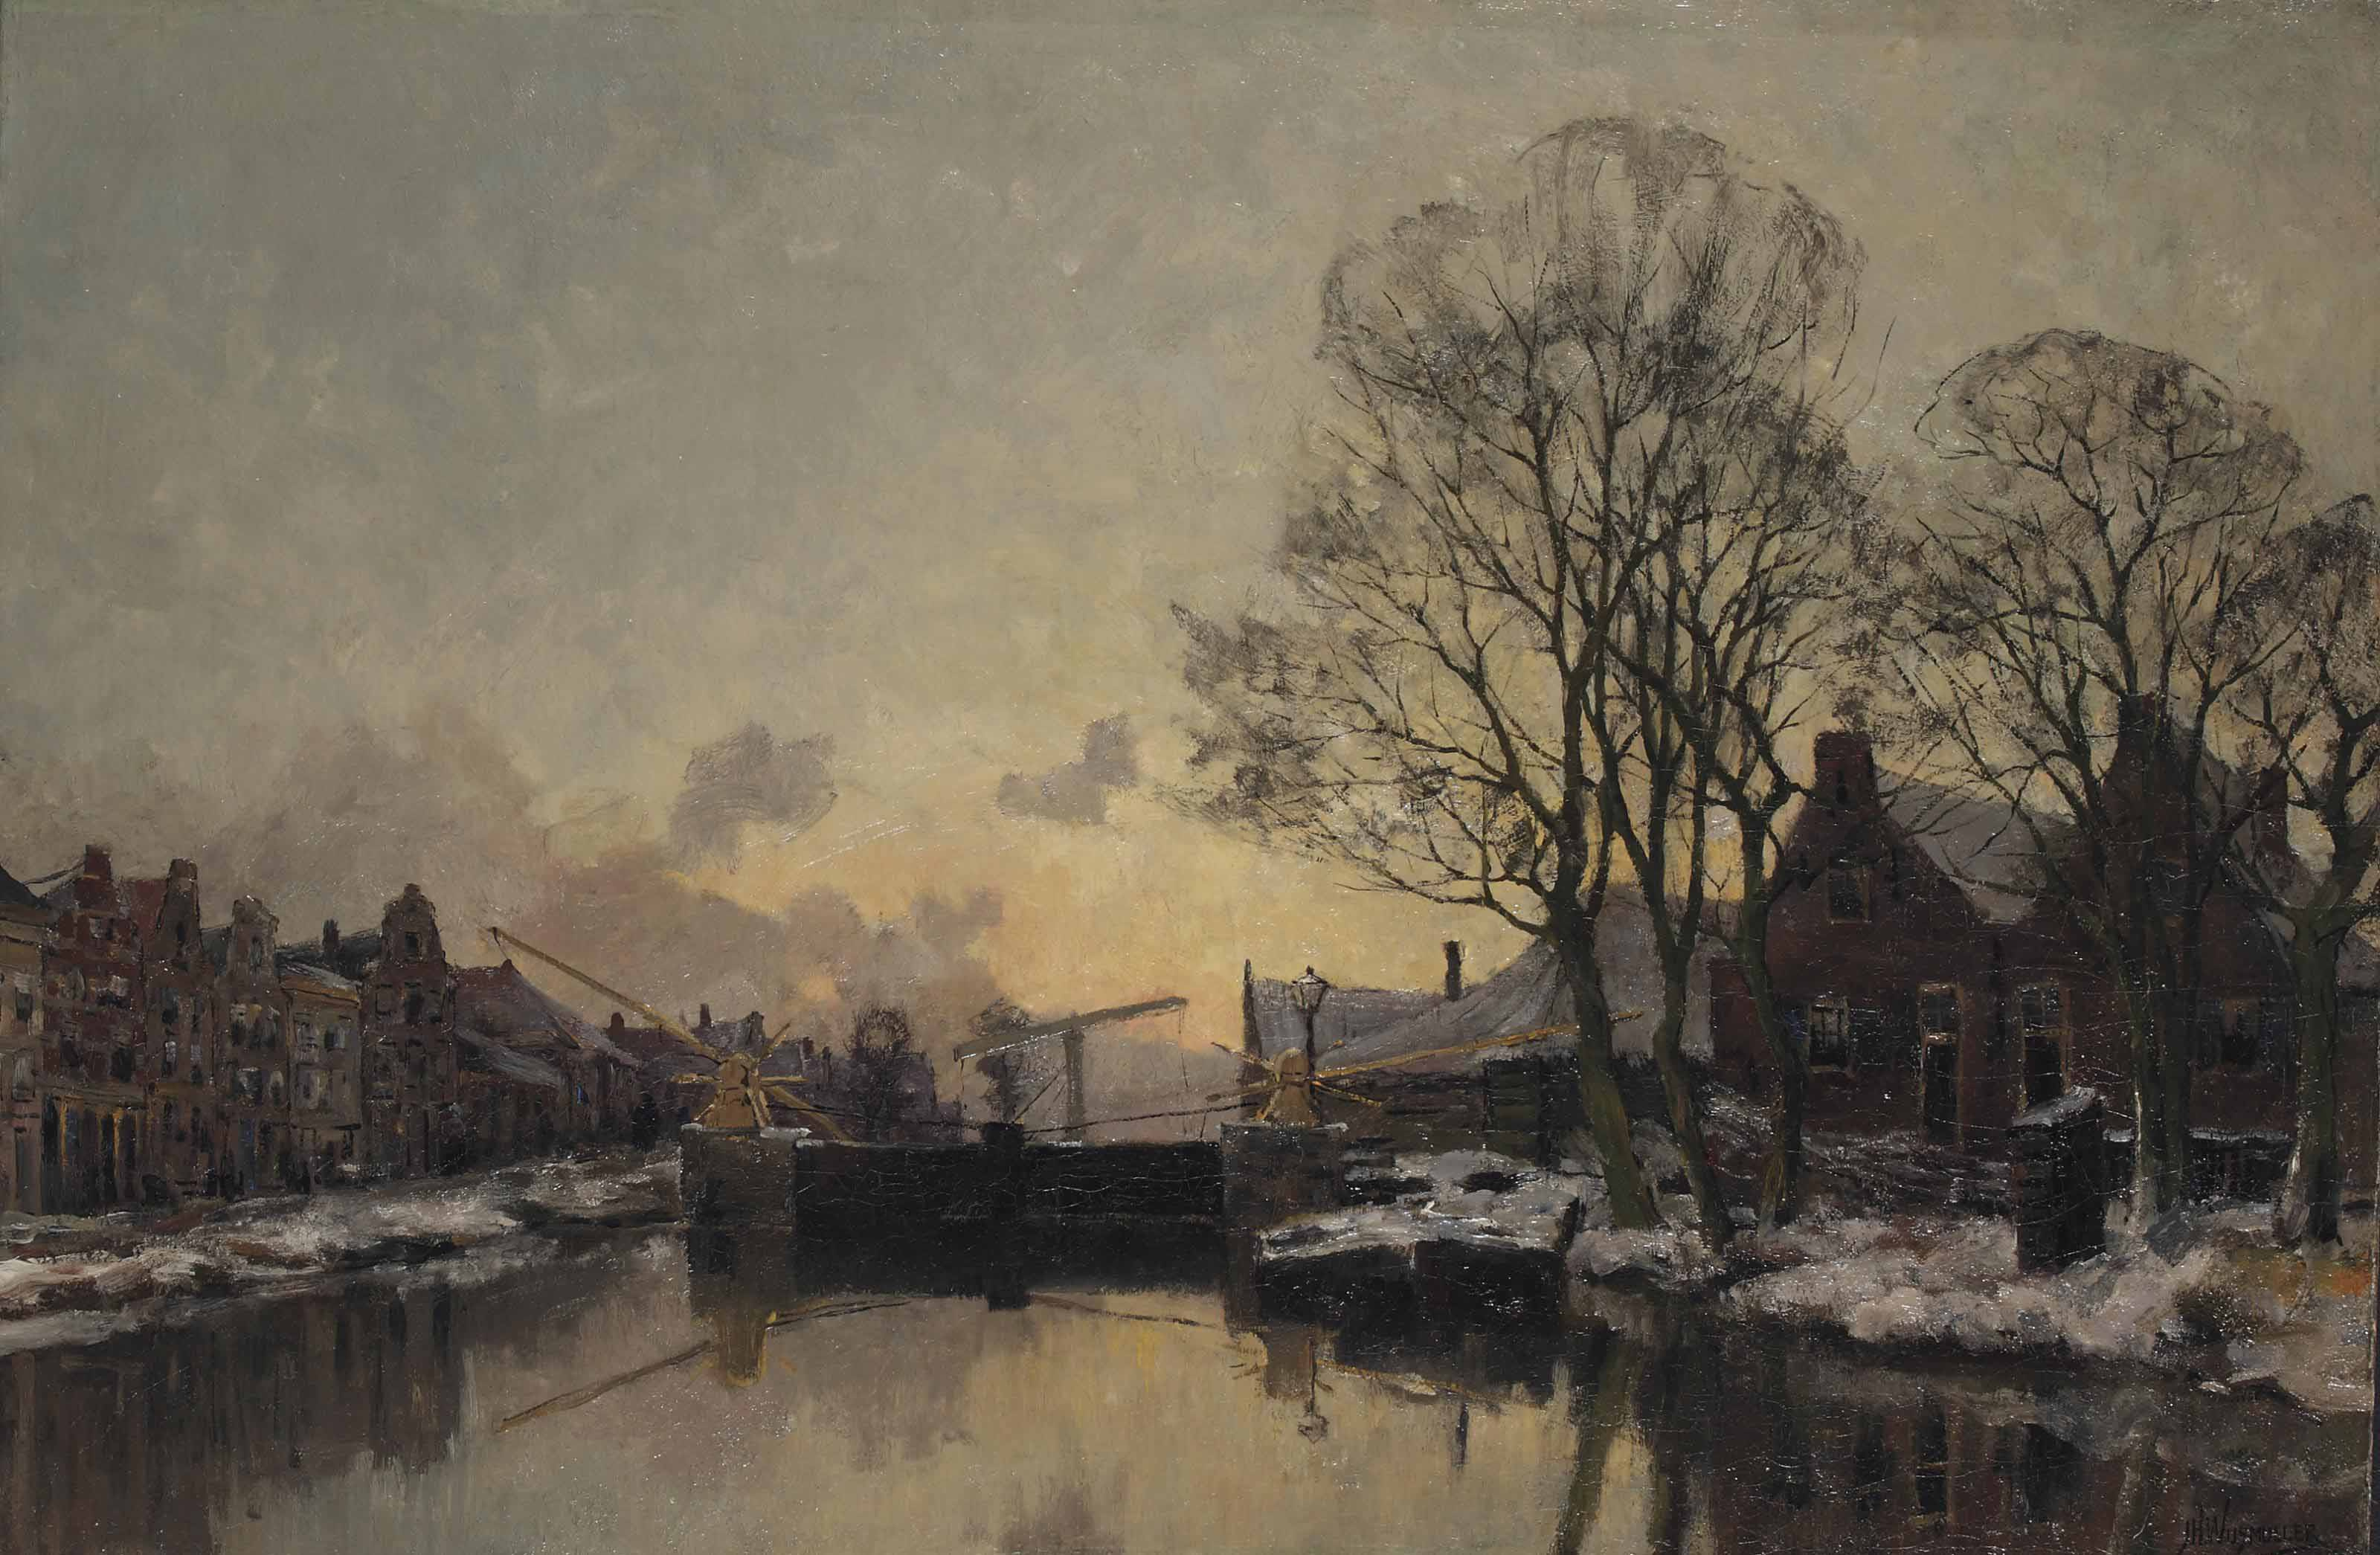 A late afternoon in winter